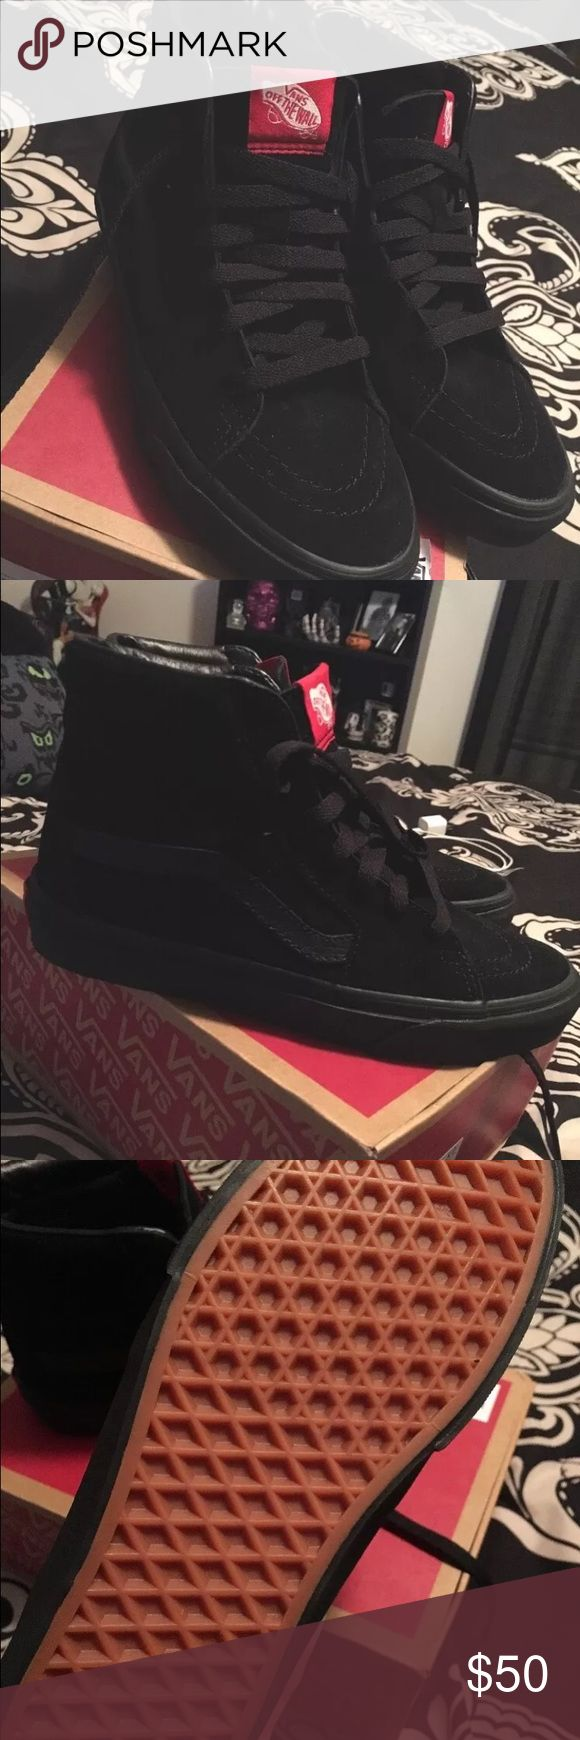 NEW! Vans sk8 hi all black suede high top sneakers Brand new pair of Vans sk8 hi black on black suede high tops. Men's size 5 / women's size 6.5. Never been worn. I got these as a gift but I already have a pair of black vans. Feel free to ask any other questions. These shoes go for $65 (+ shipping and tax) on the Vans website. Don't pass up this deal! Vans Shoes Sneakers